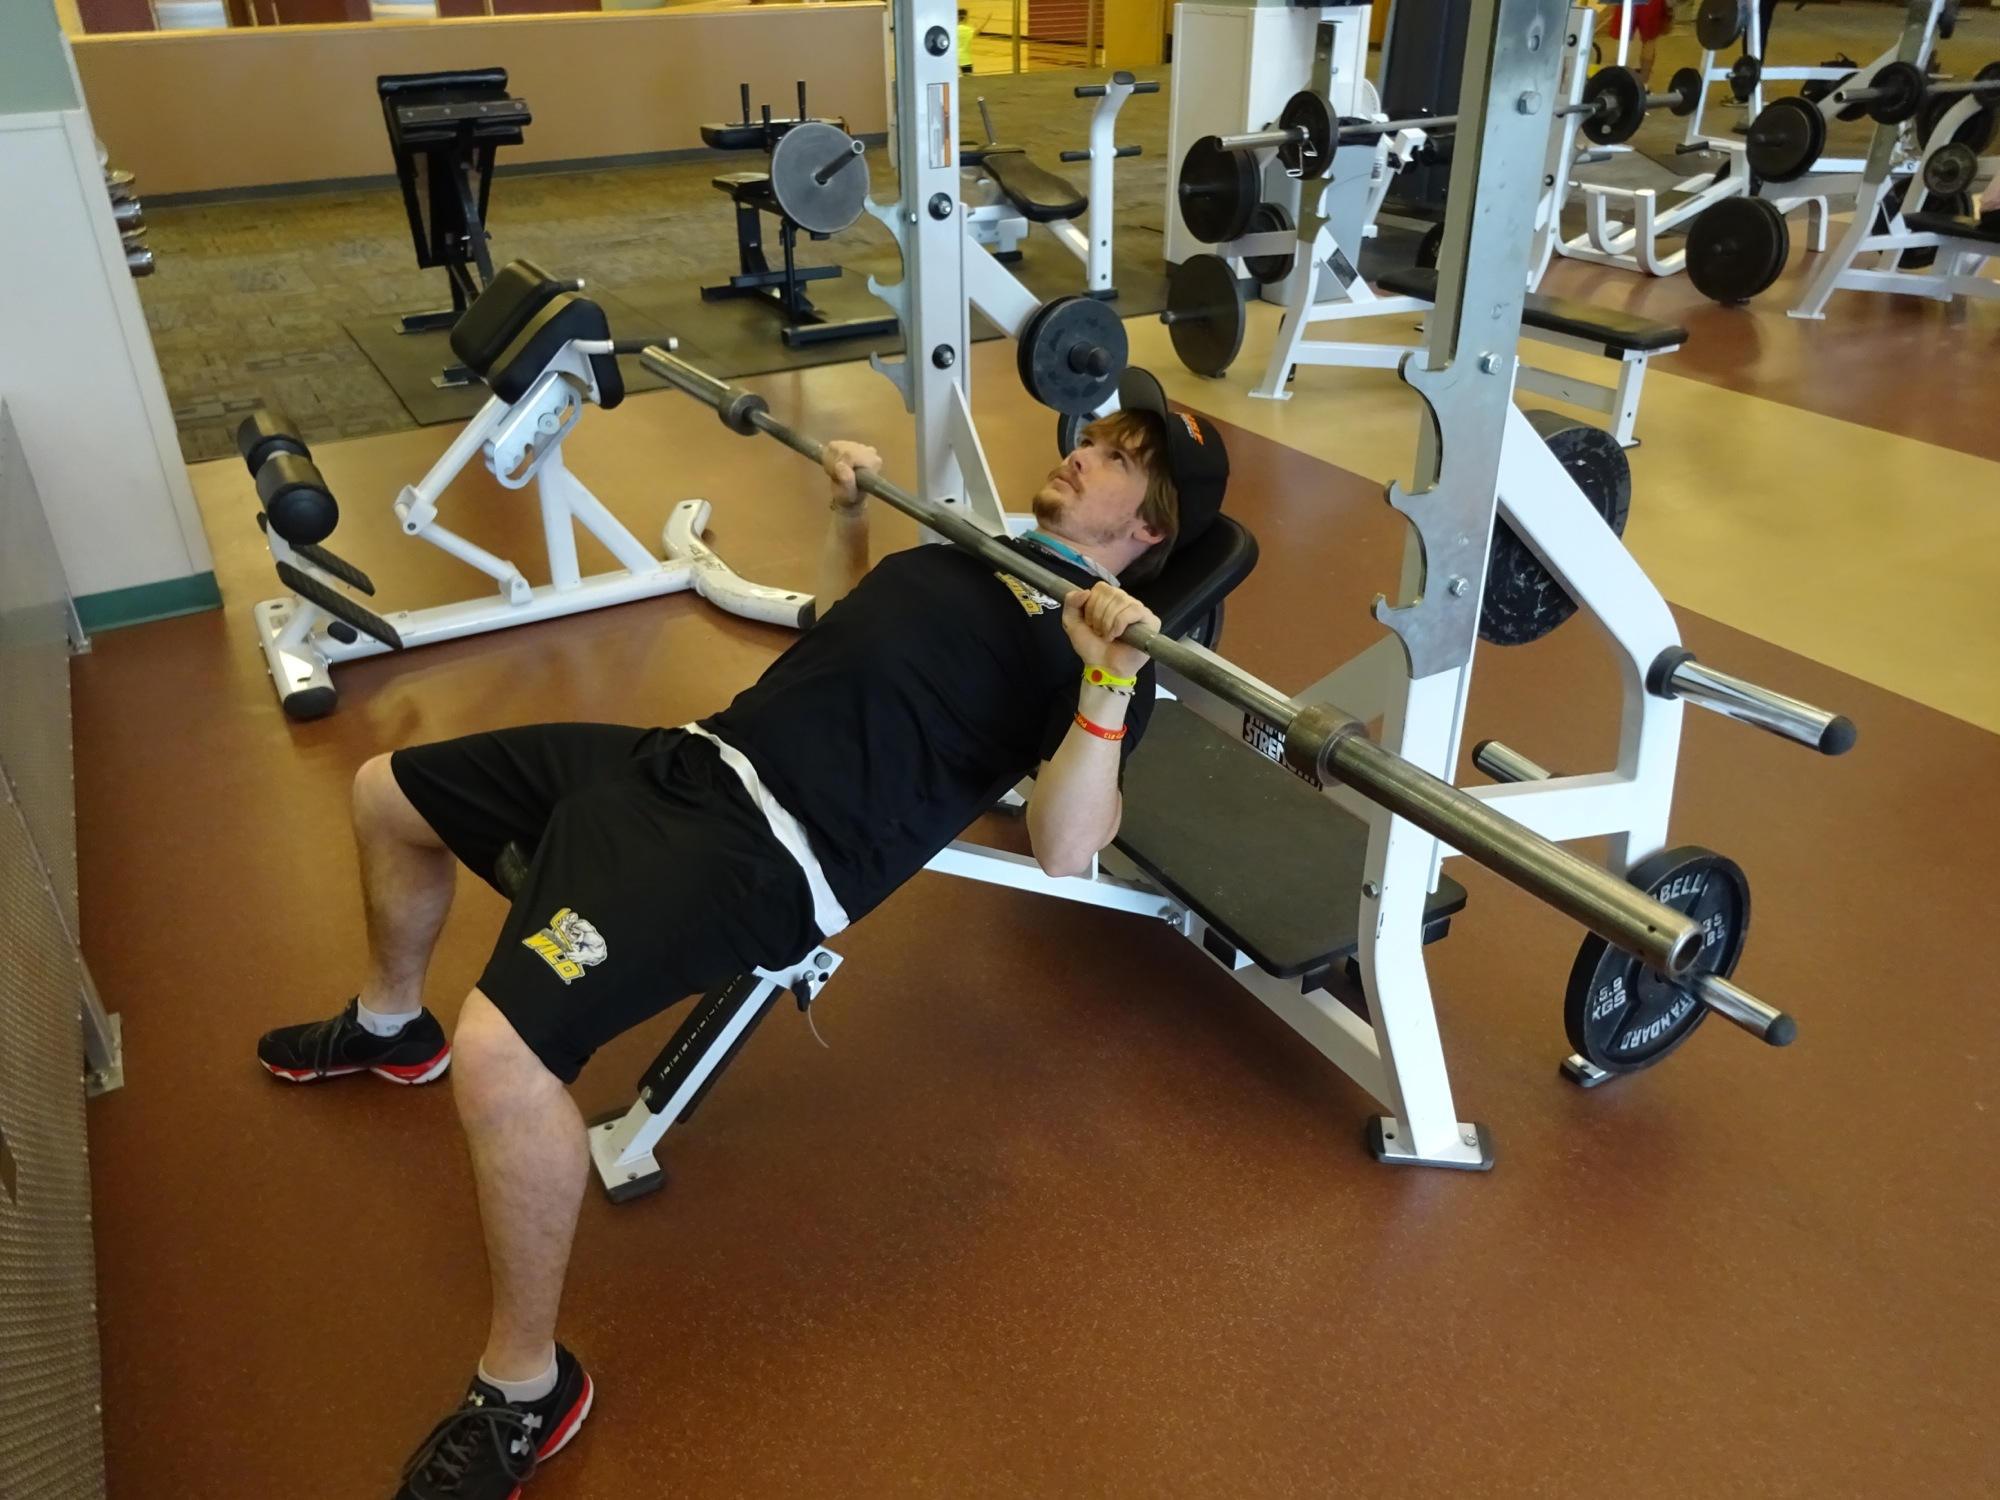 45 Degree Incline Bench Press End.JPG